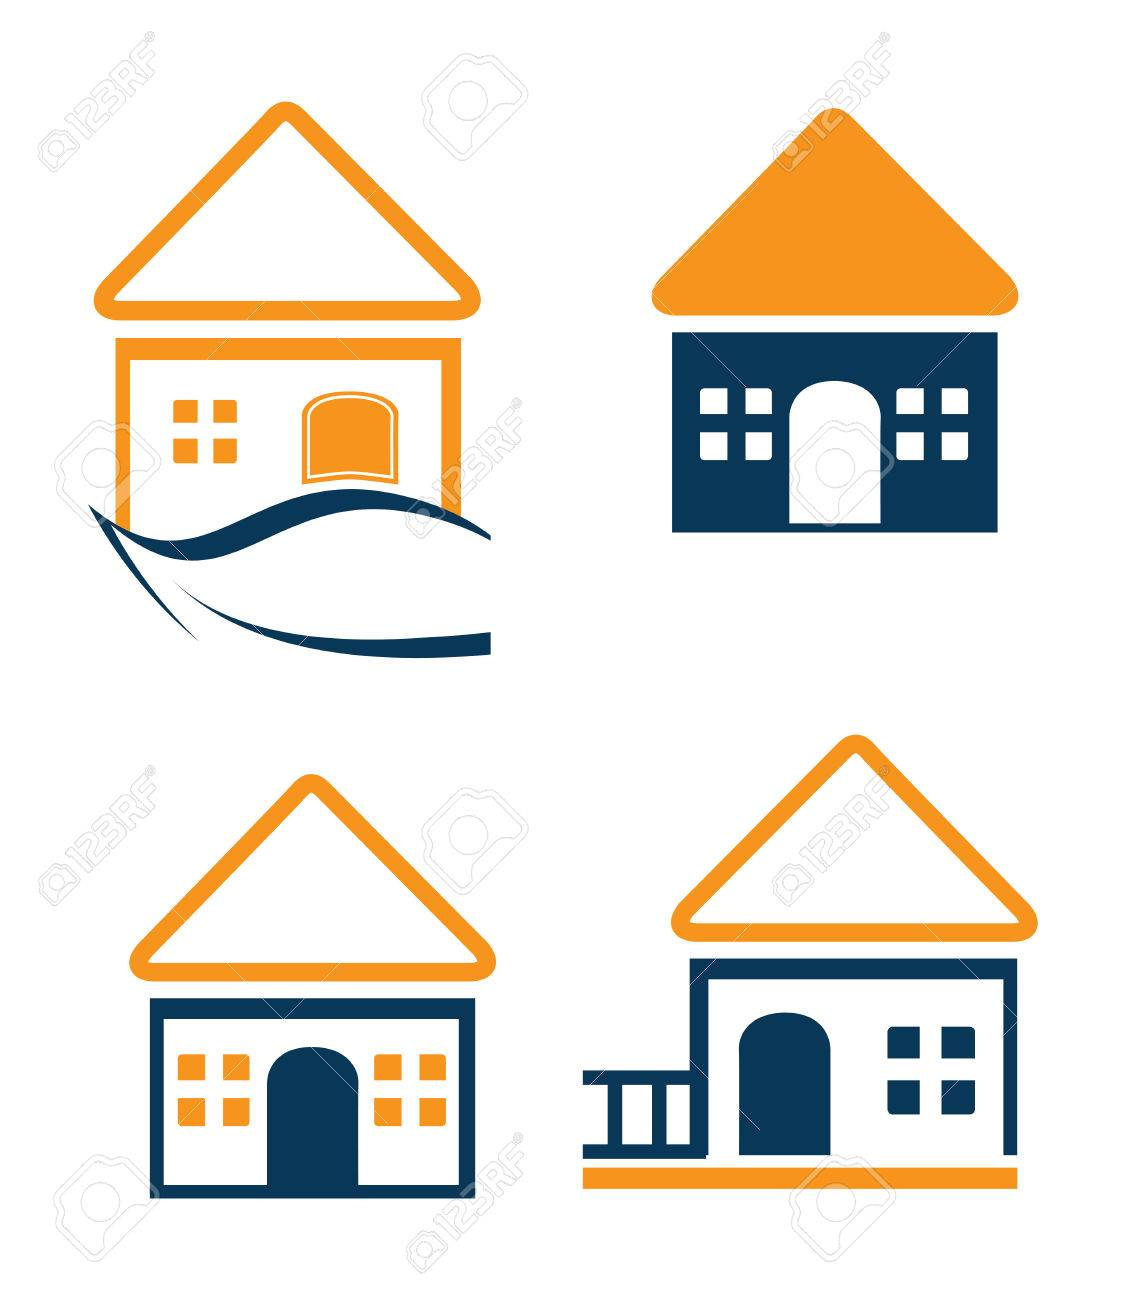 Home Design Over White Background, Vector Illustration Stock Vector    26728915